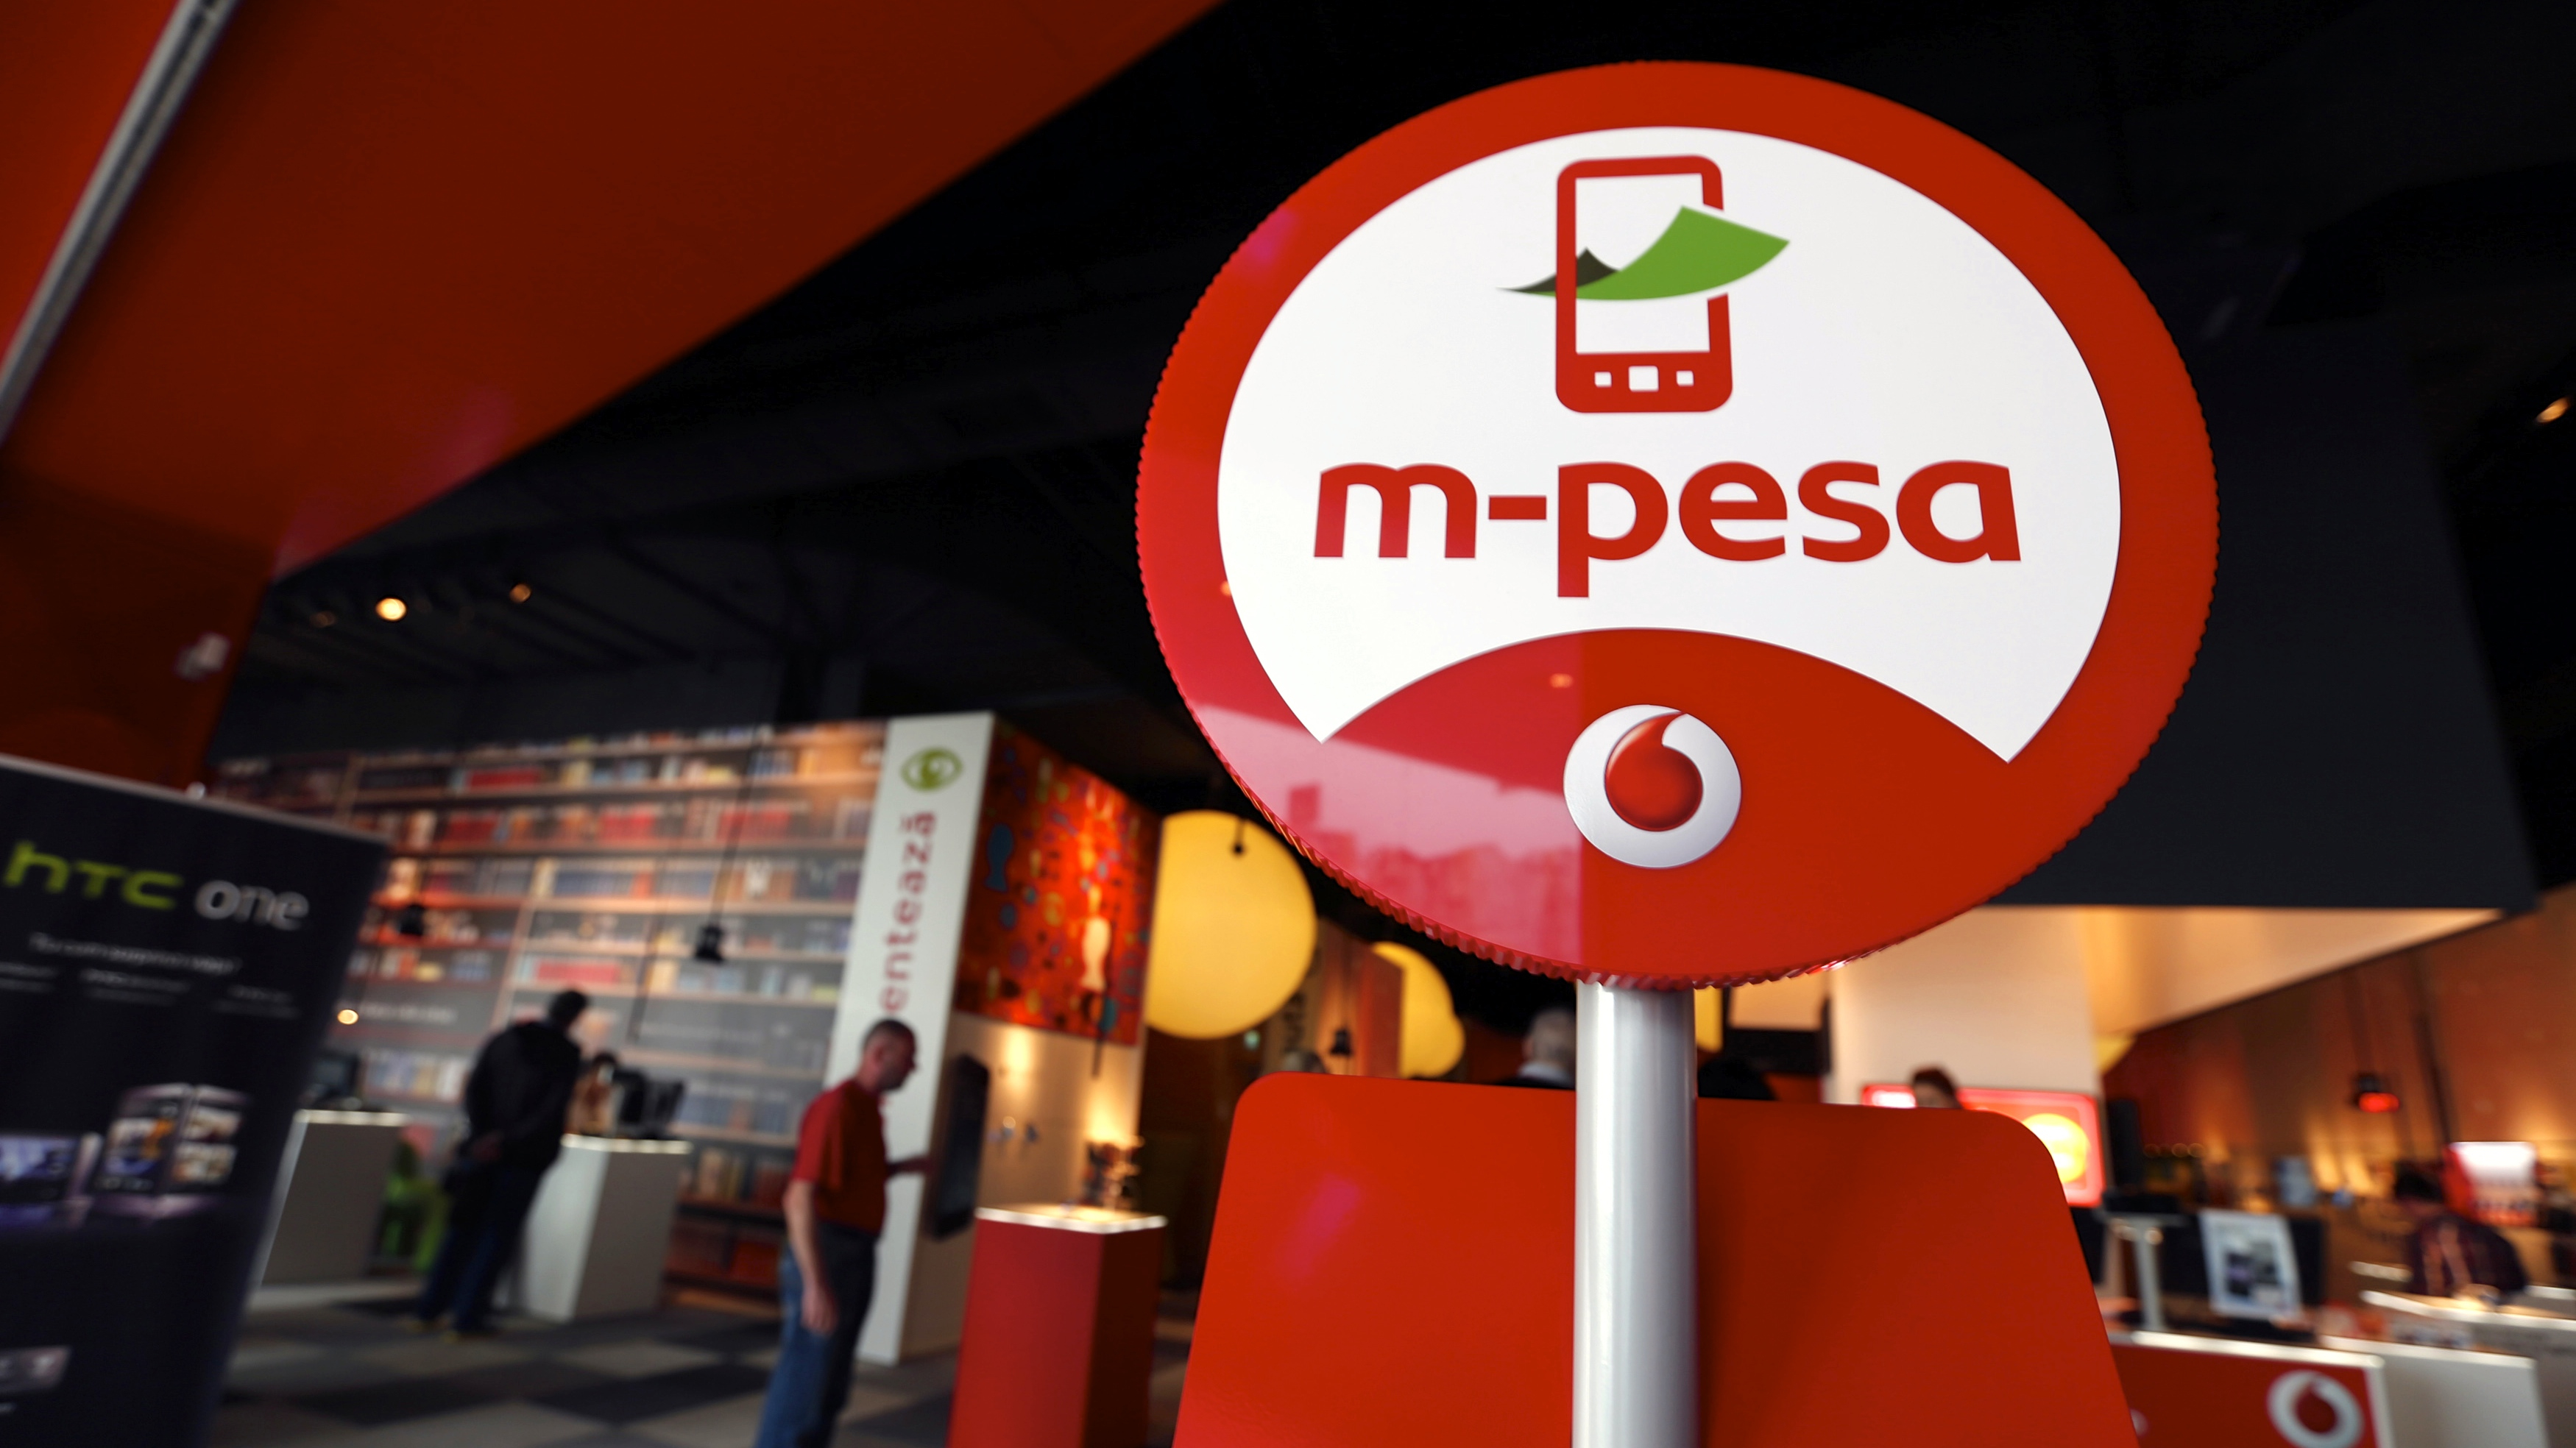 The logo of M-Pesa's text message transactions option for mobile phones is seen at a Vodafone shop in Bucharest April 1, 2014. Vodafone brought the mobile money service that has revolutionised banking in Africa to Romania on Monday, offering M-Pesa text-message transactions to millions of customers in its first push into Europe. Vodafone said it had chosen Romania to target the seven million people there who still mainly use cash rather than cards, and others with bank accounts who could still benefit from transferring money by text.